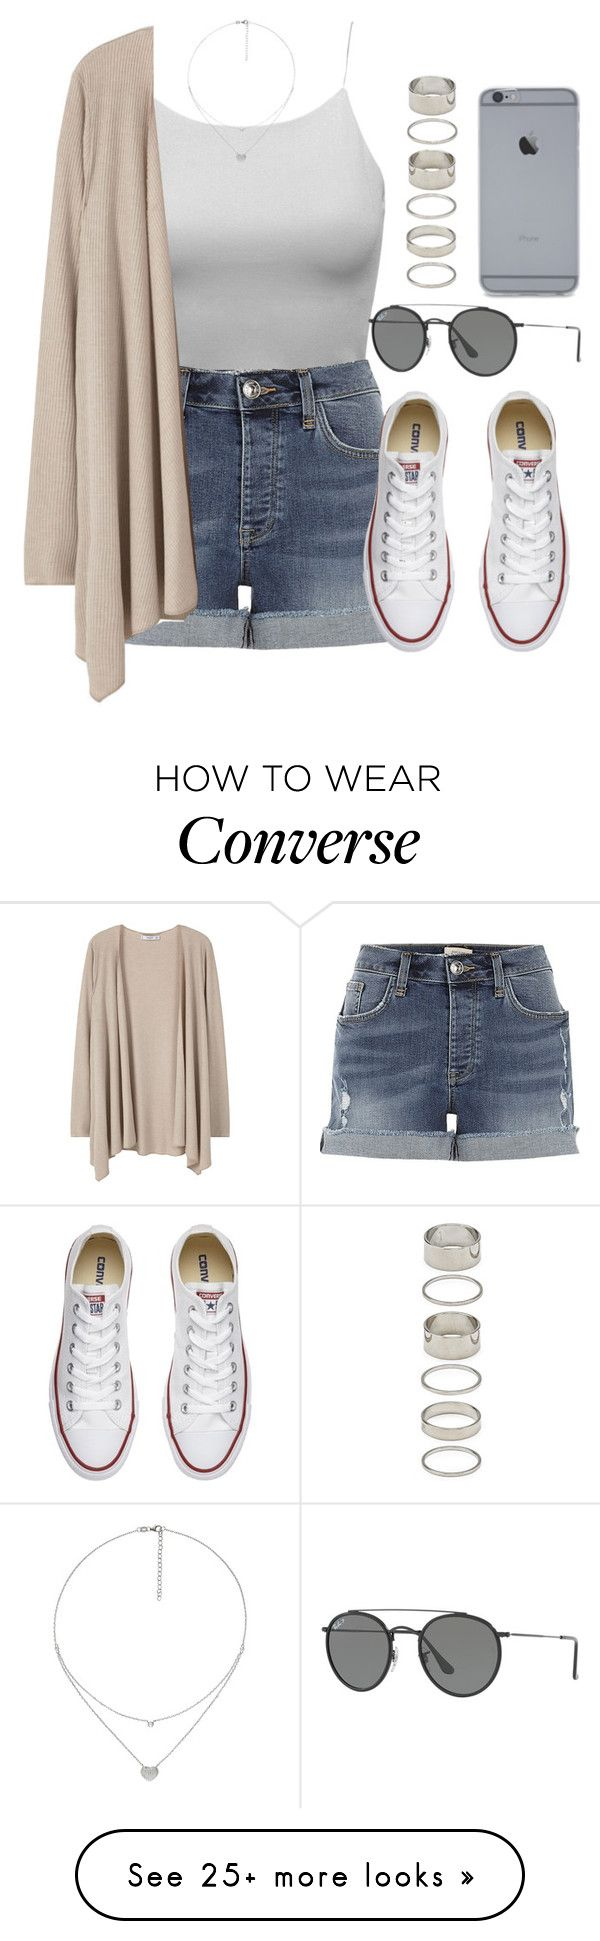 """Sin título #12084"" by vany-alvarado on Polyvore featuring River Island, MANGO, Converse, Ray-Ban, Forever 21 and Folli Follie"